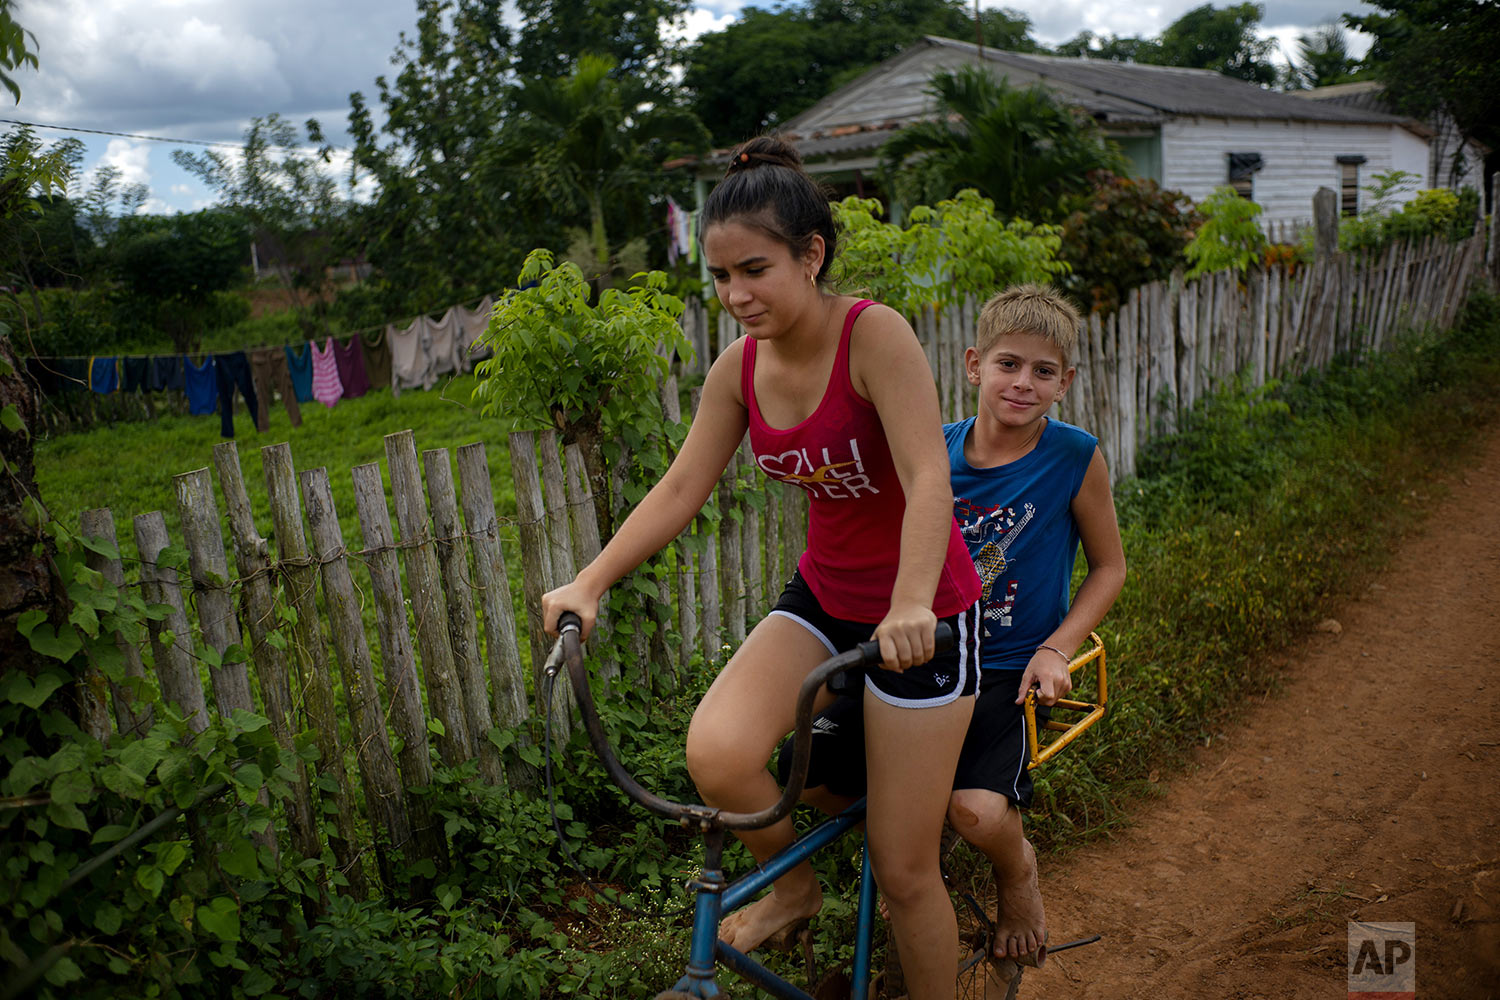 In this Aug. 24, 2019 photo, children cycle to a tractor trailer that has been converted into a swimming pool in El Infernal neighborhood in San Andres in the province of Pinar del Río, Cuba. (AP Photo/Ramon Espinosa)